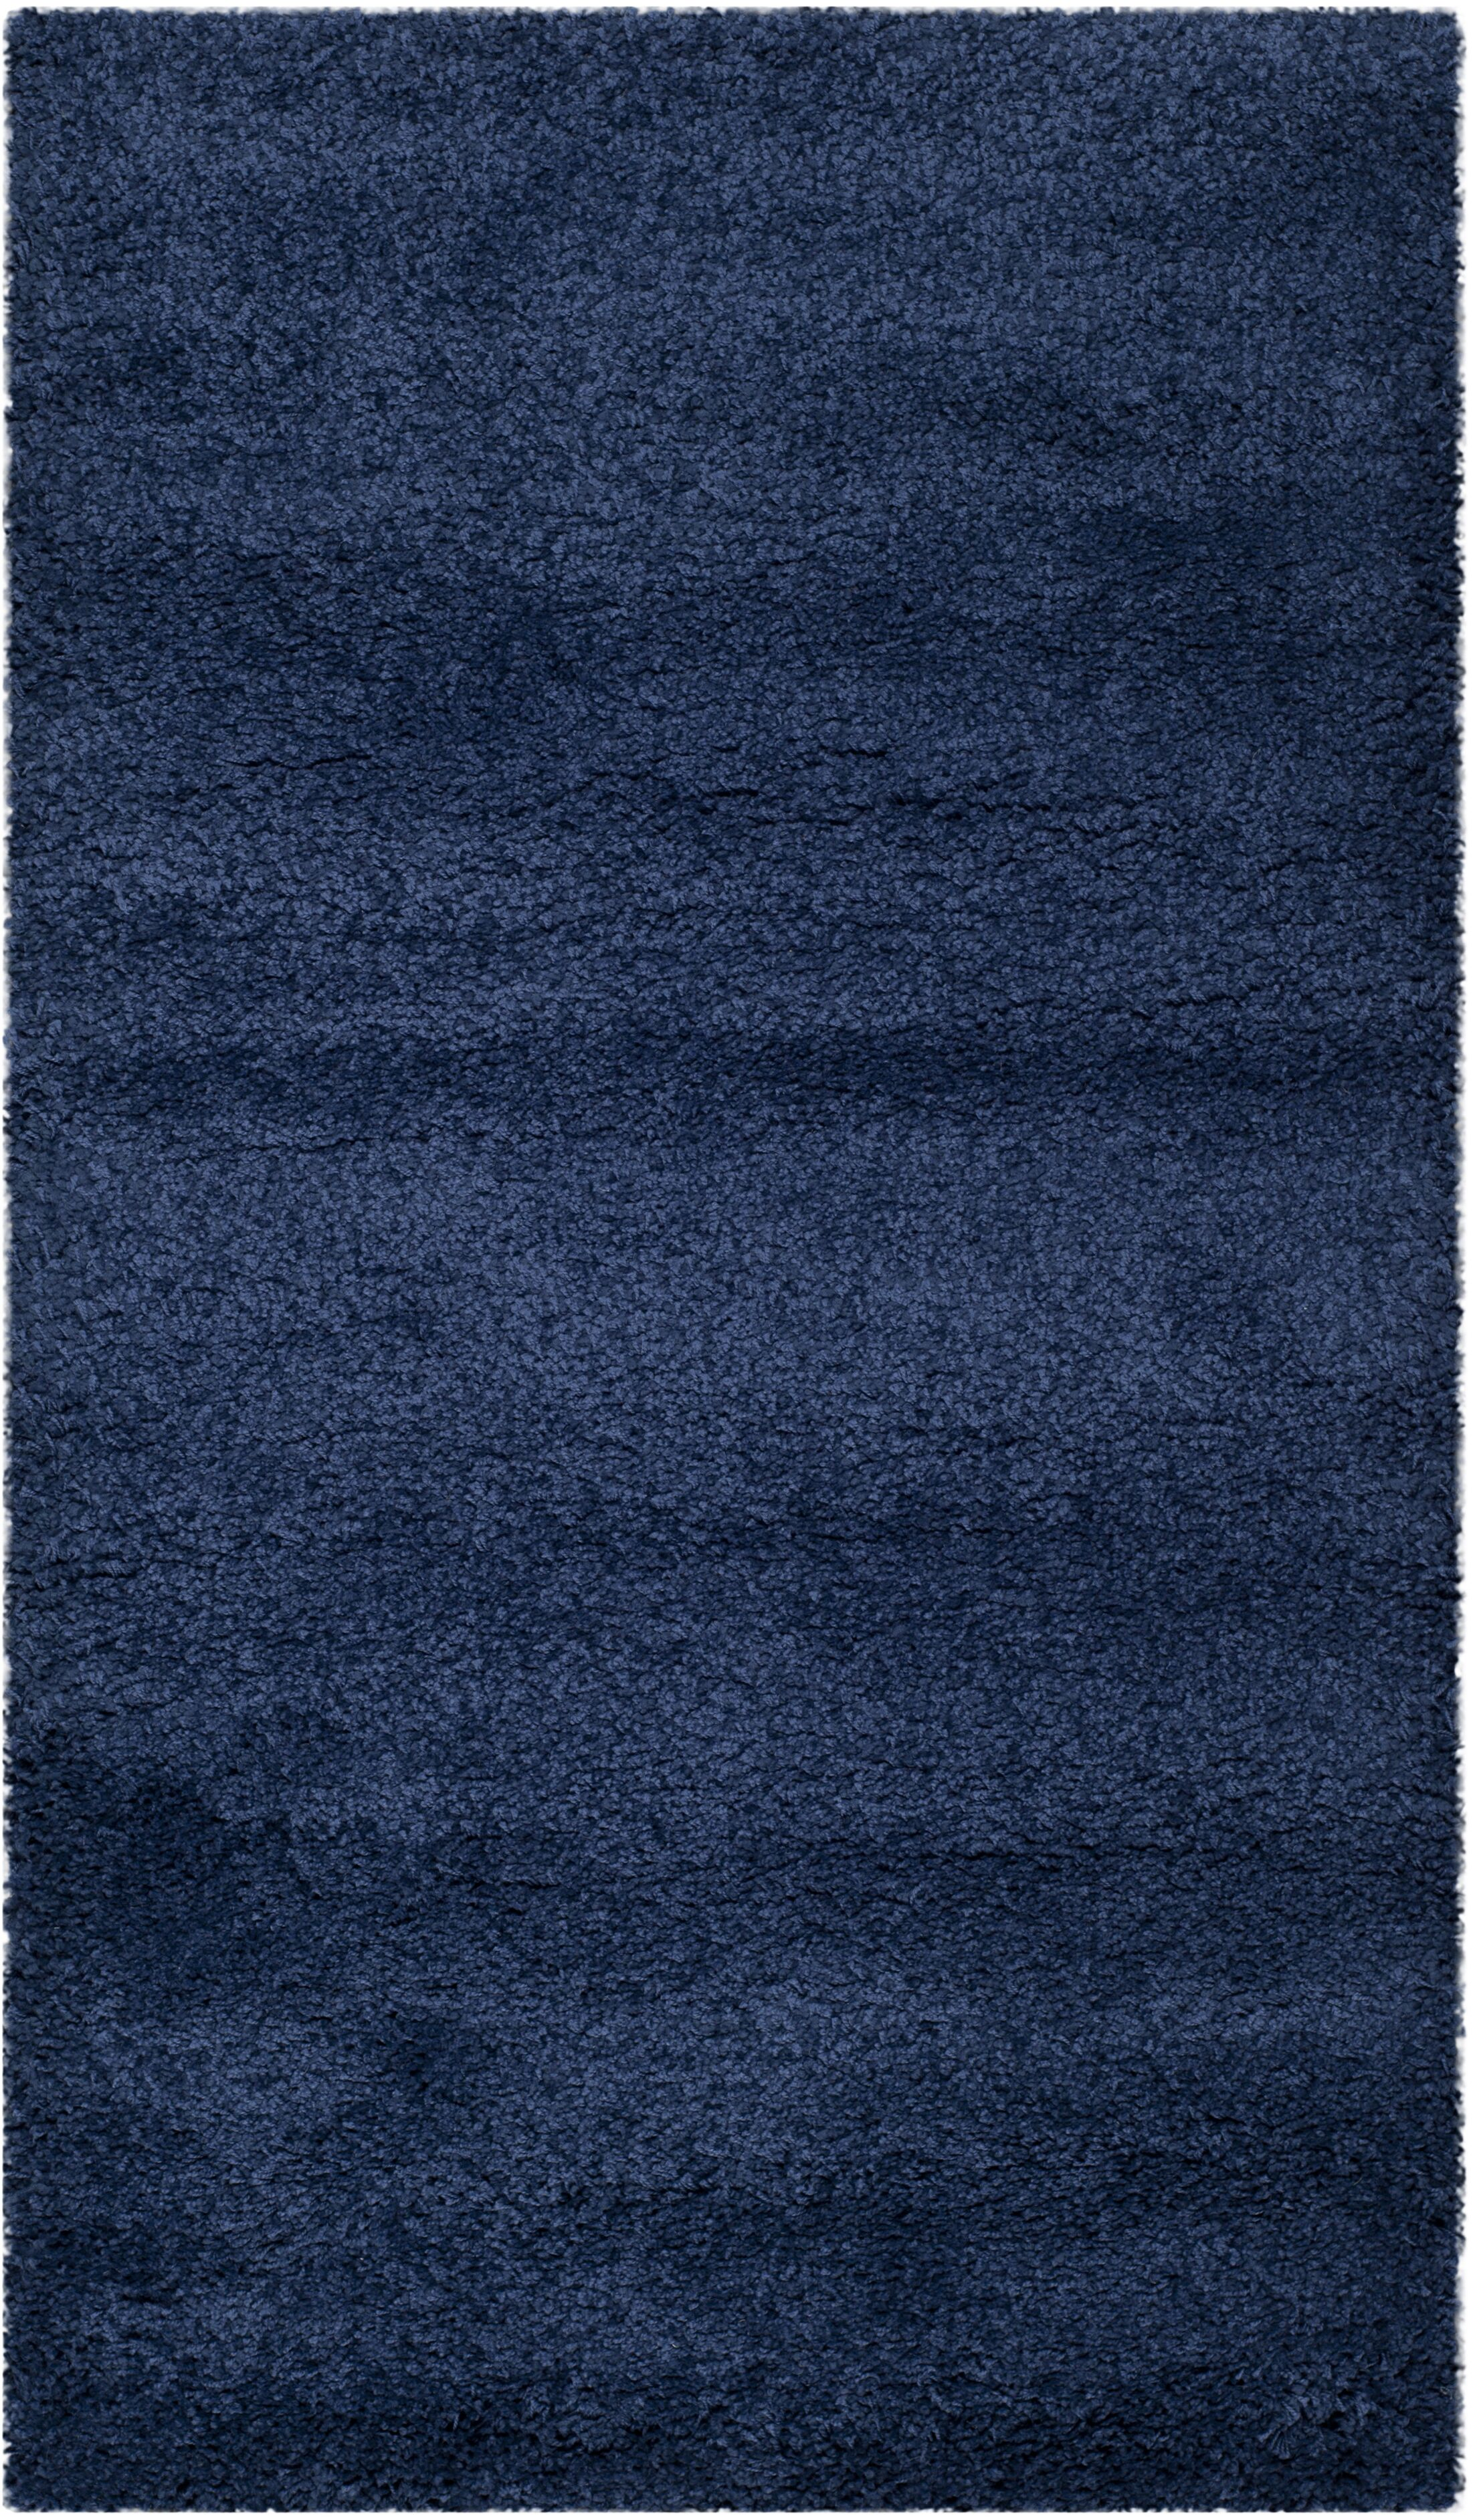 Starr Hill Navy Blue Area Rug Rug Size: 11' X 16' RECTANGLE